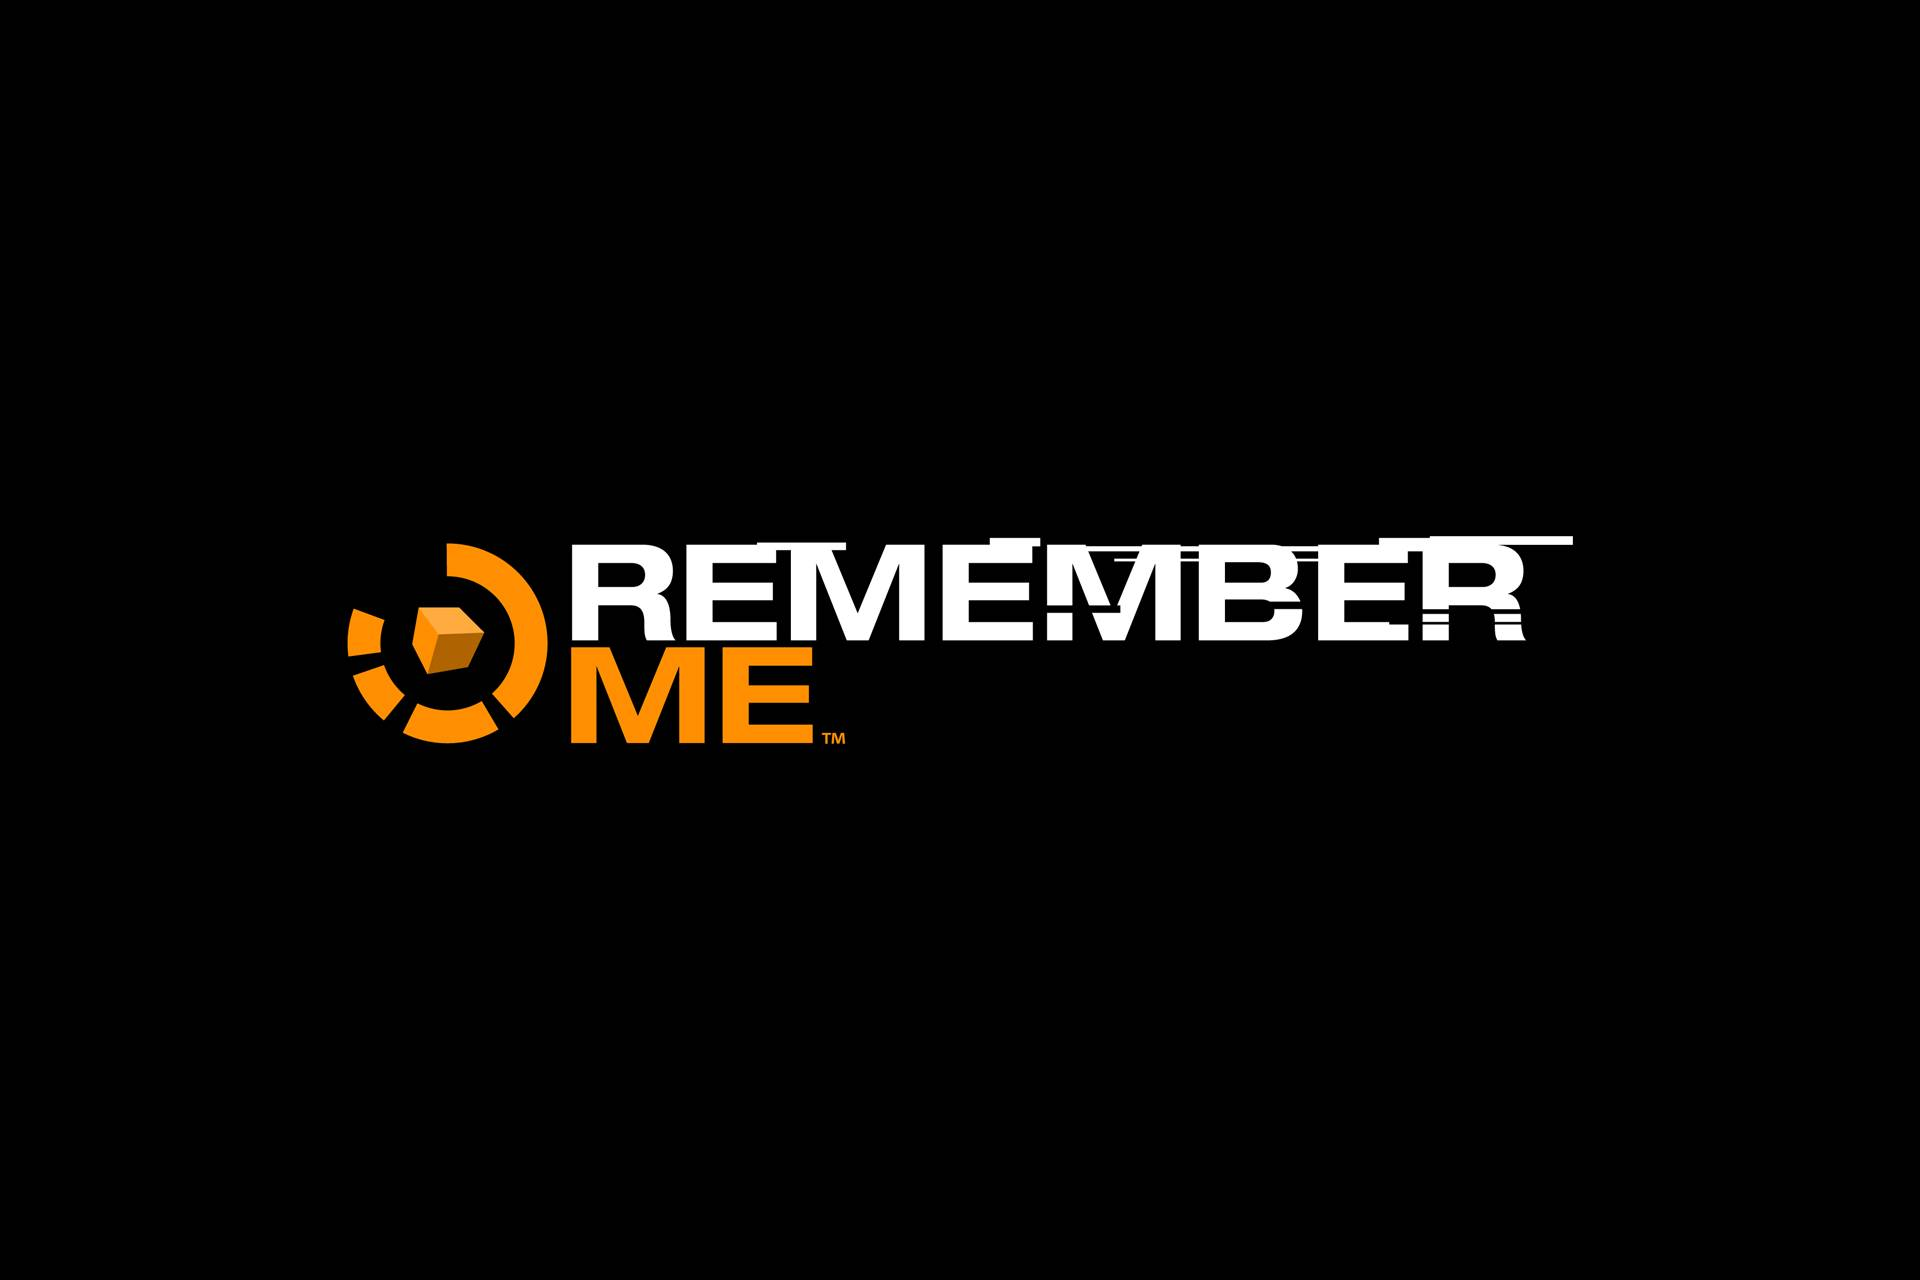 Remember Me Wallpapers In Hd Video Game